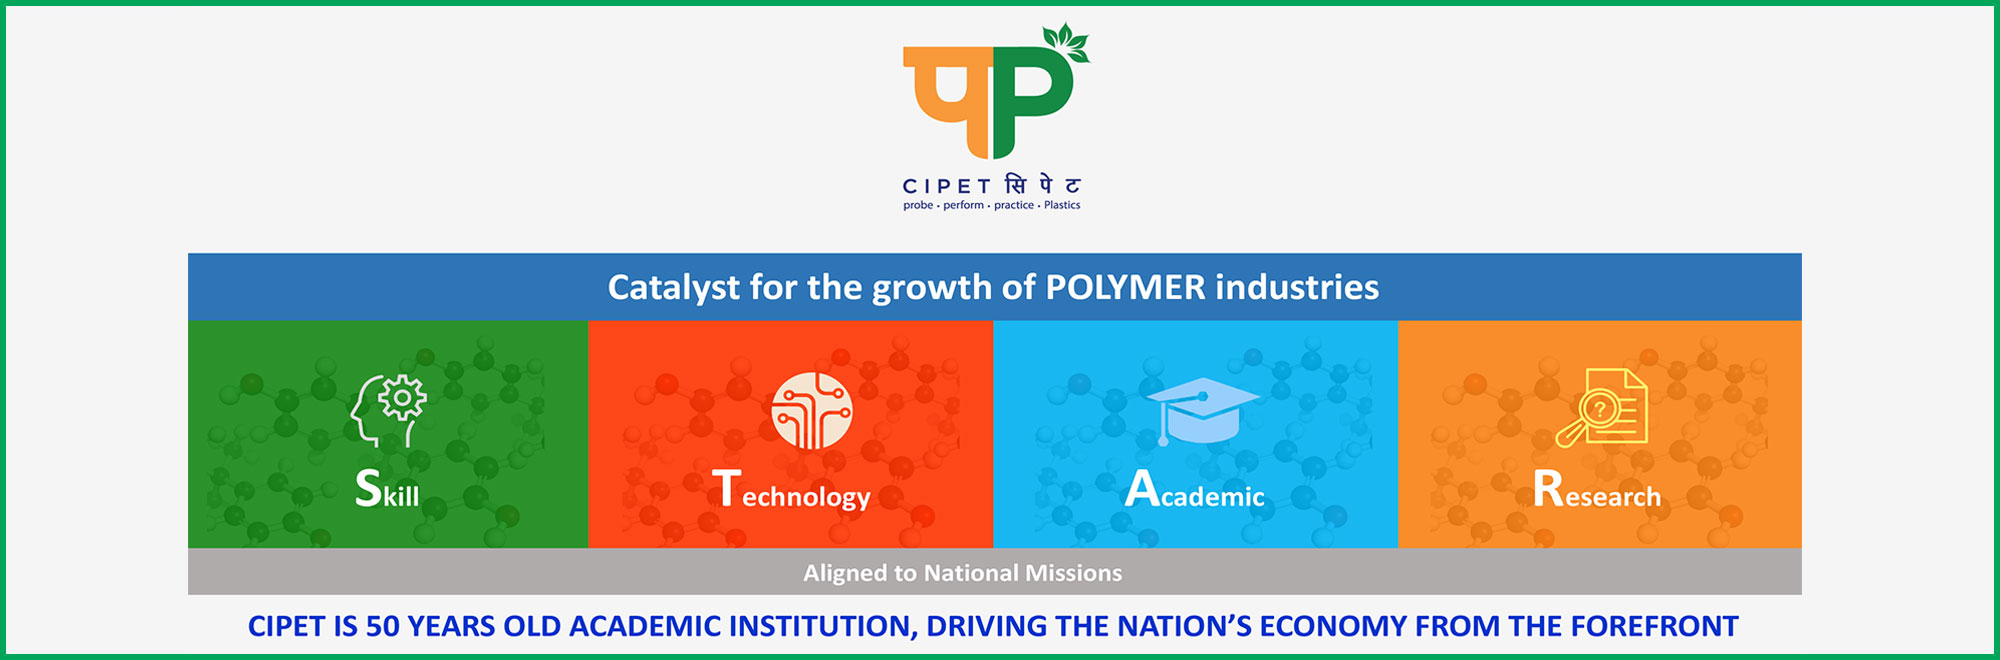 CIPET IS 50 YEARS OLD ACADEMIC INSTITUTION, DRIVING THE NATION'S ECONOMY FROM THE FOREFRONT